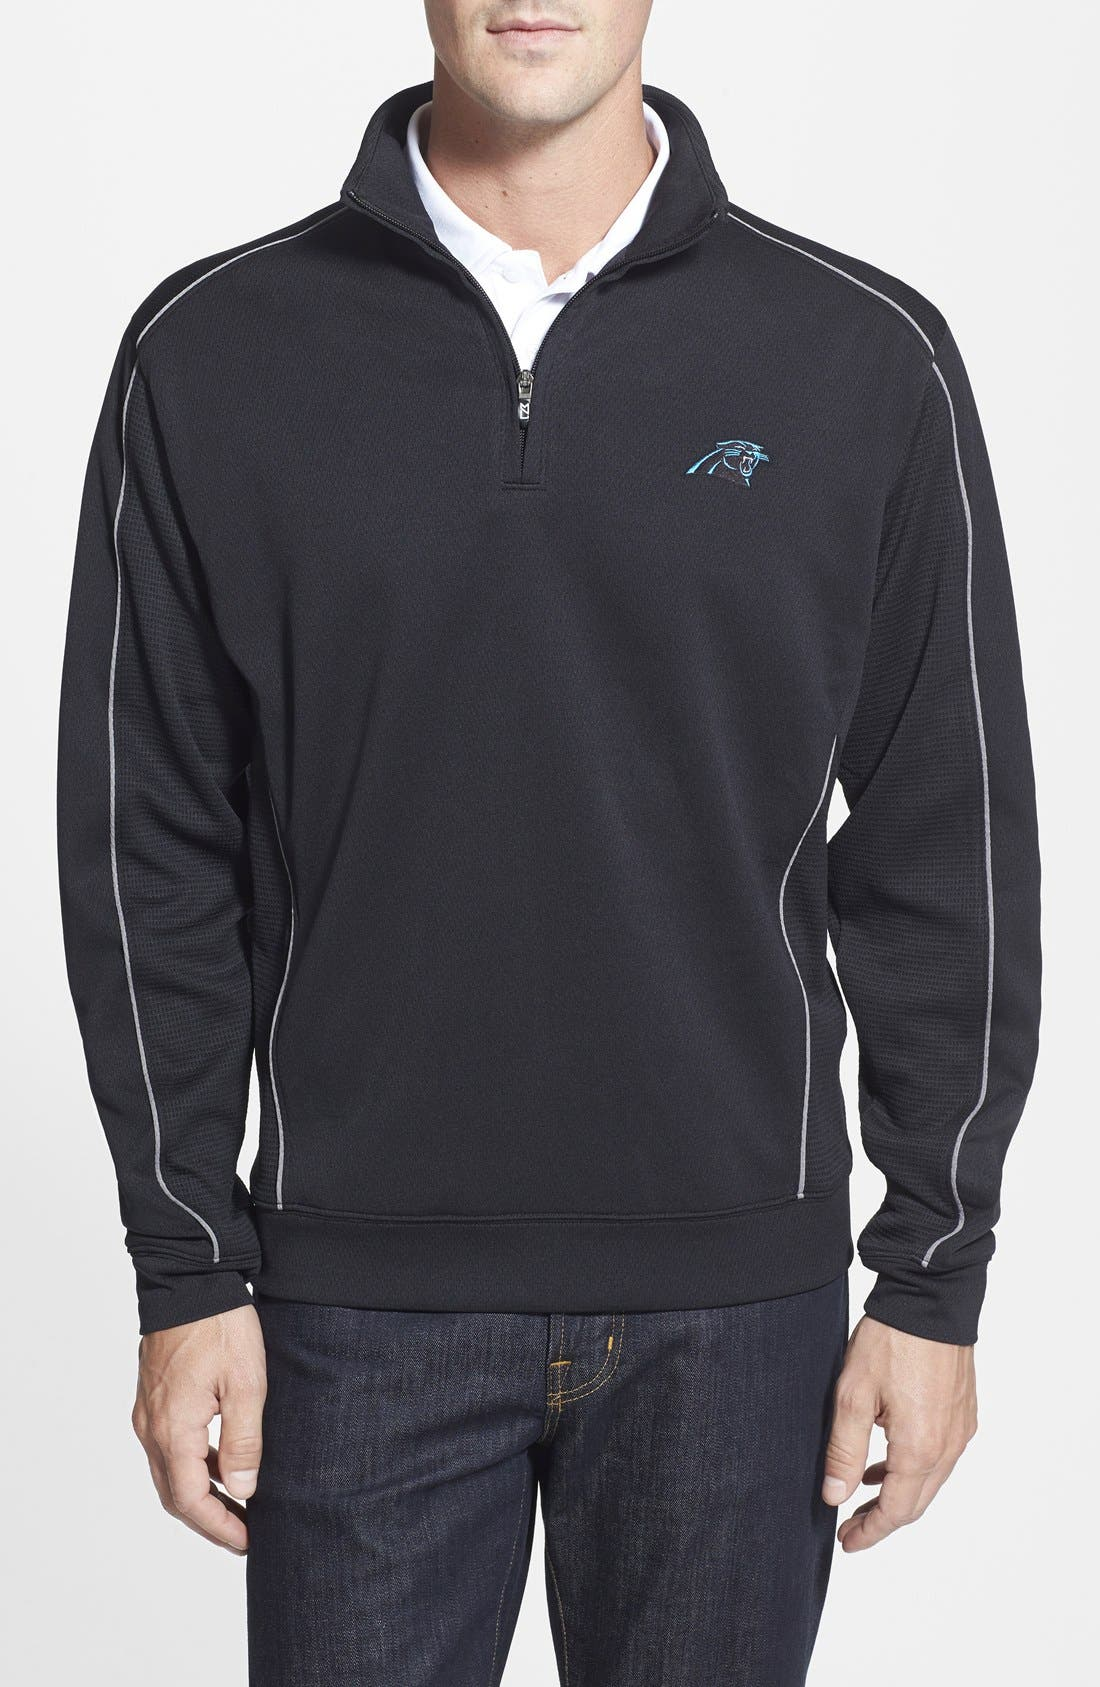 Carolina Panthers - Edge DryTec Moisture Wicking Half Zip Pullover,                             Main thumbnail 1, color,                             001